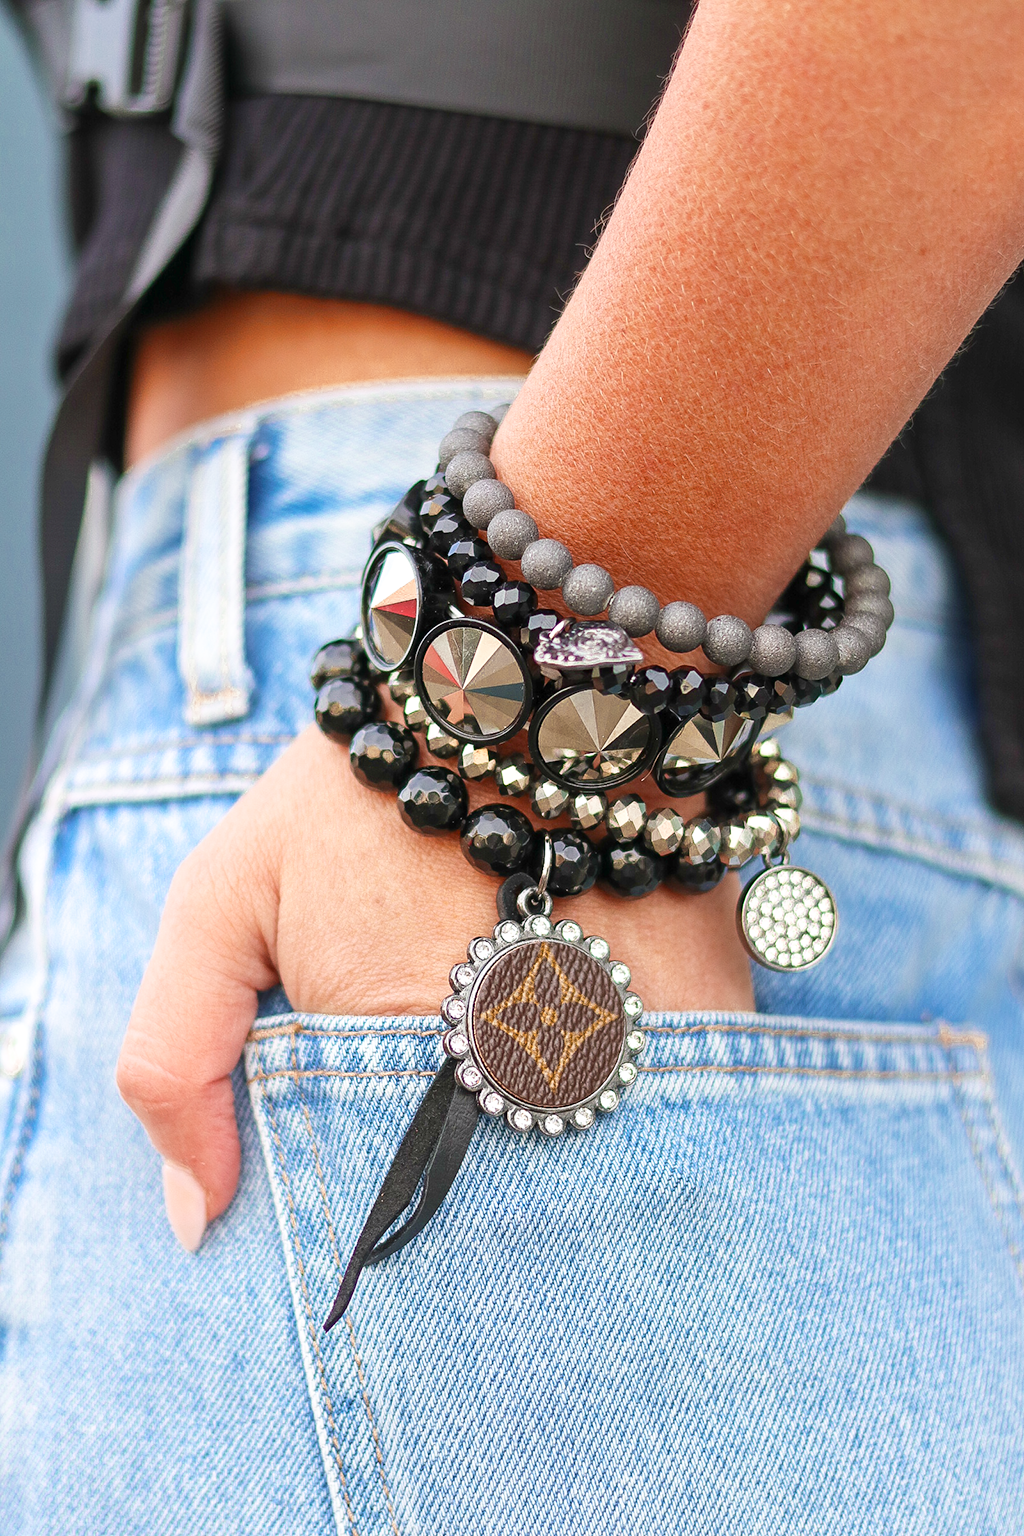 A LITTLE STACK FOR YOUR WRIST IS NEVER A BAD CHOICE. WE LOVE THIS BLACK BEADED SET WITH ADORABLE CHARMS. NOT TO MENTION IT IS REPURPOSED LOUIS VUTTION.